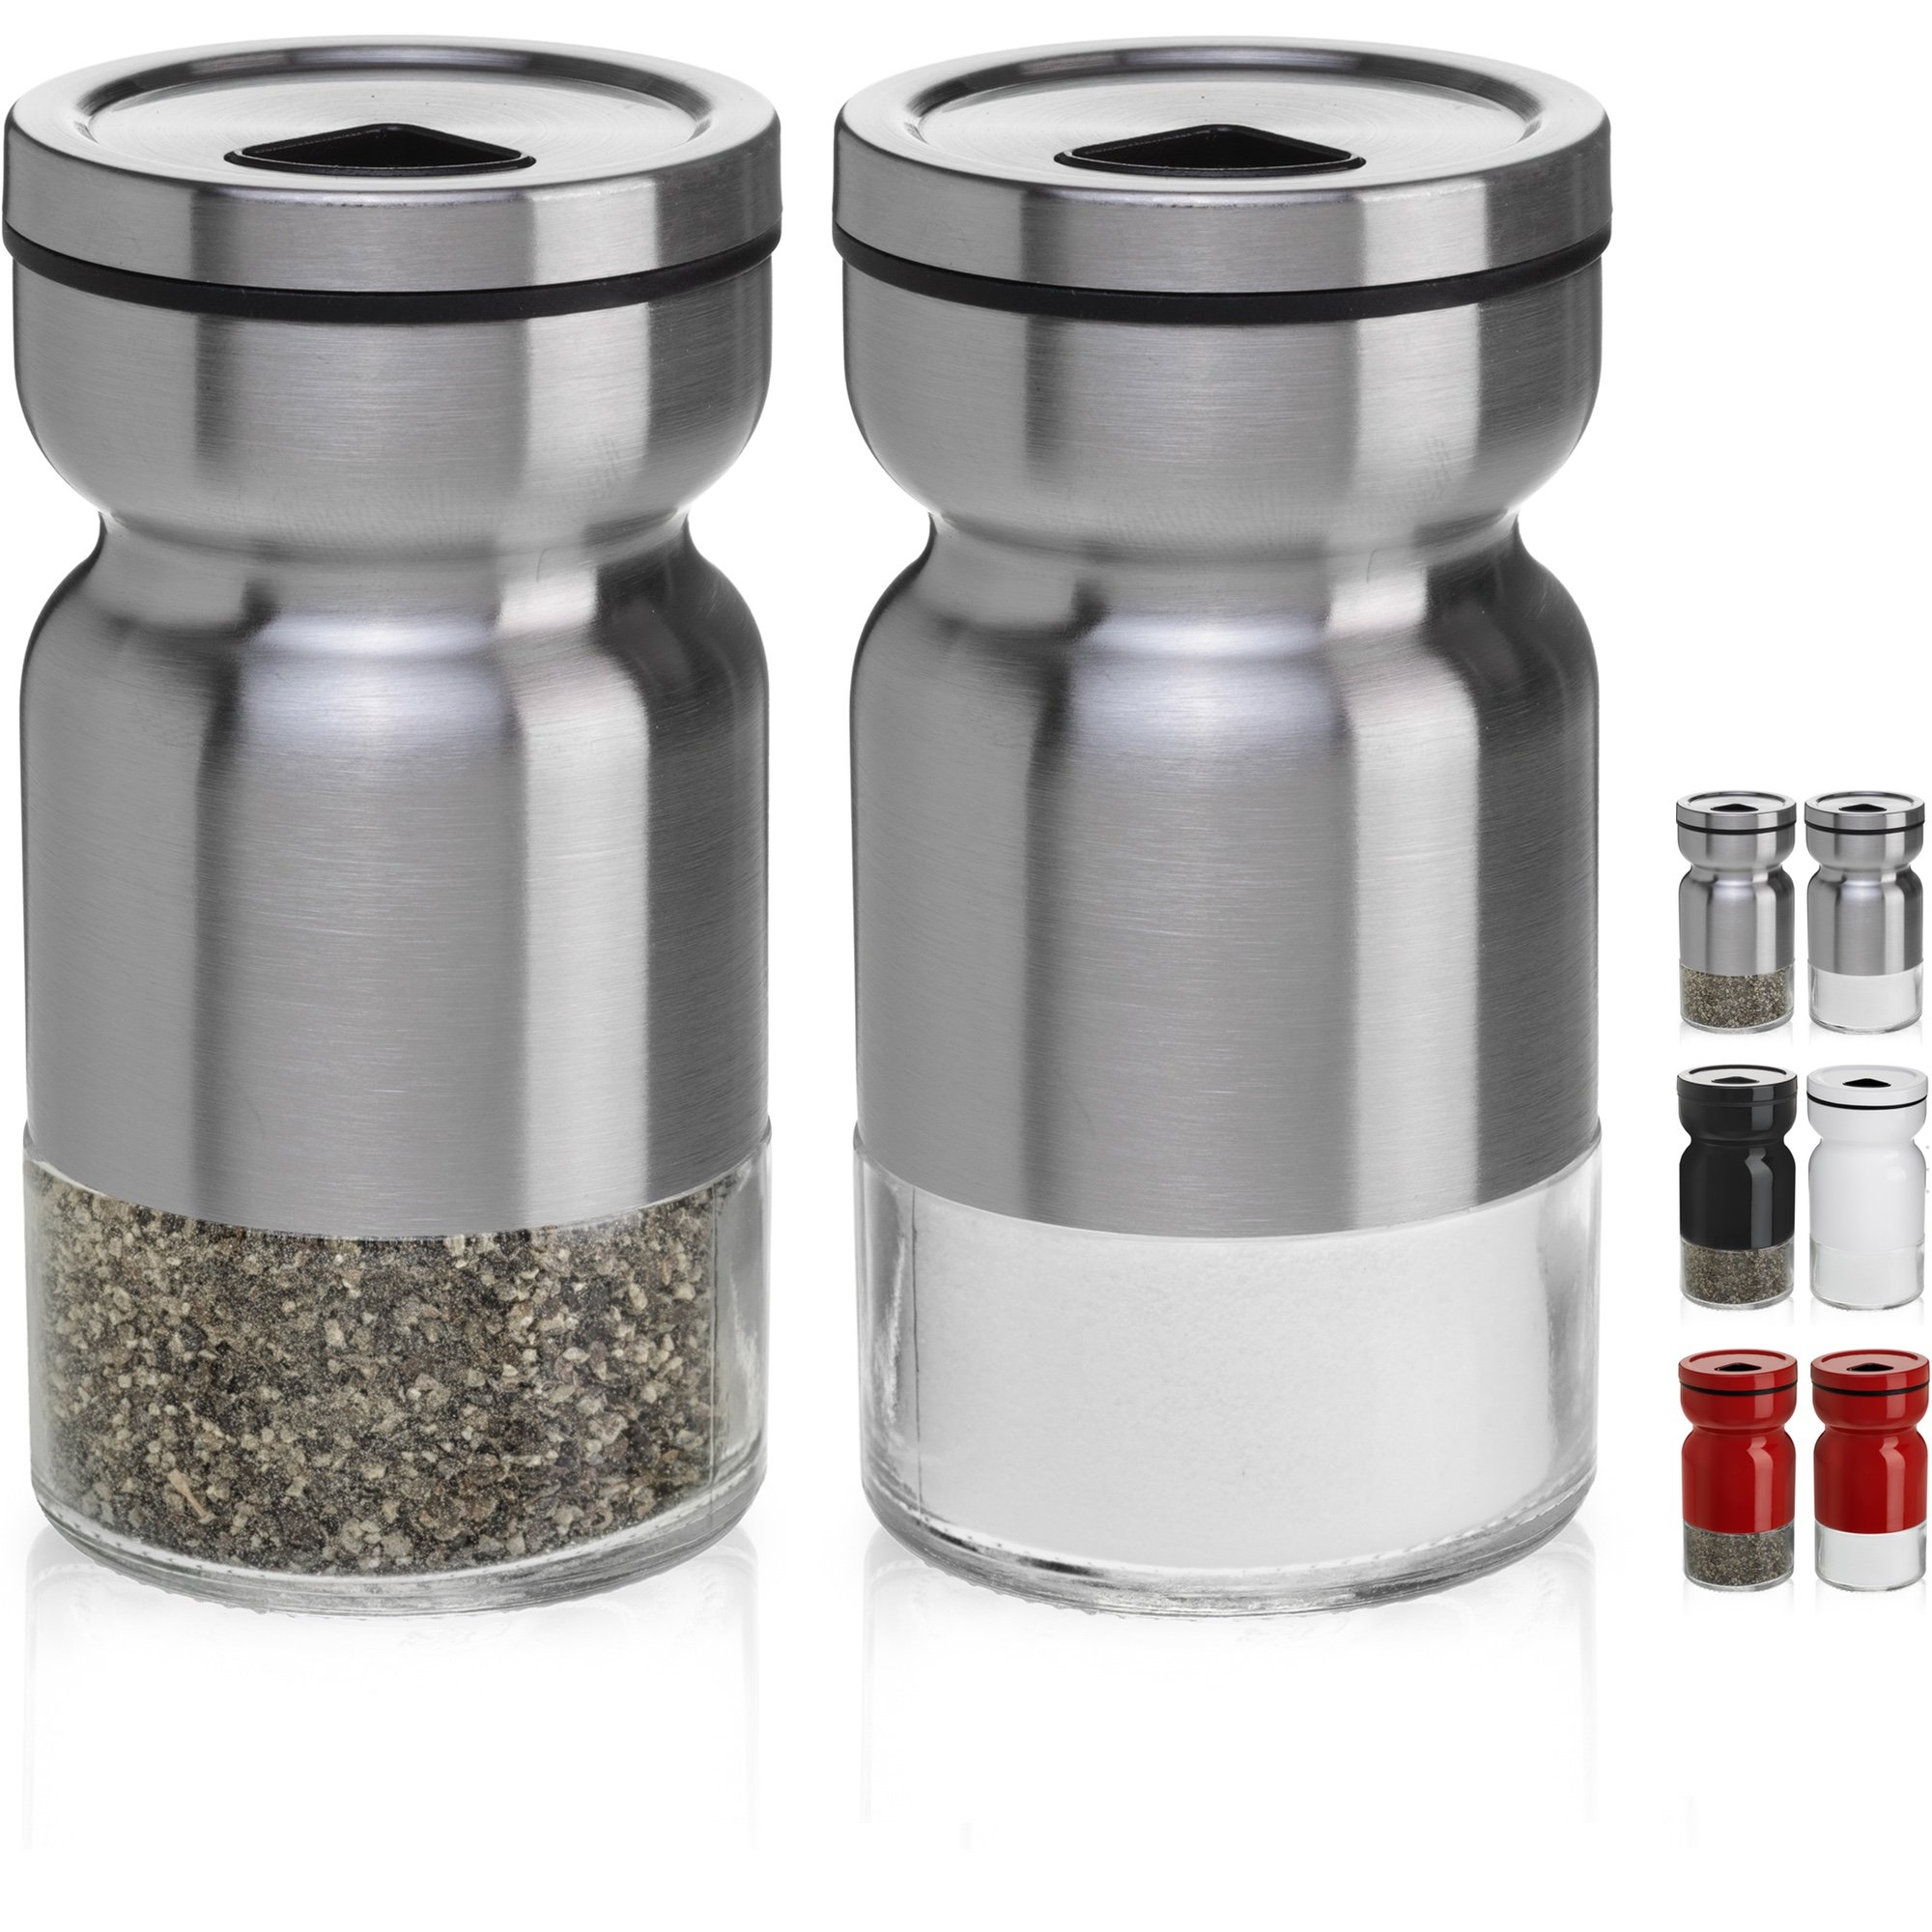 CHEFVANTAGE Salt and Pepper Shakers Set with Adjustable Pour Holes, Stainless Steel by CHEFVANTAGE